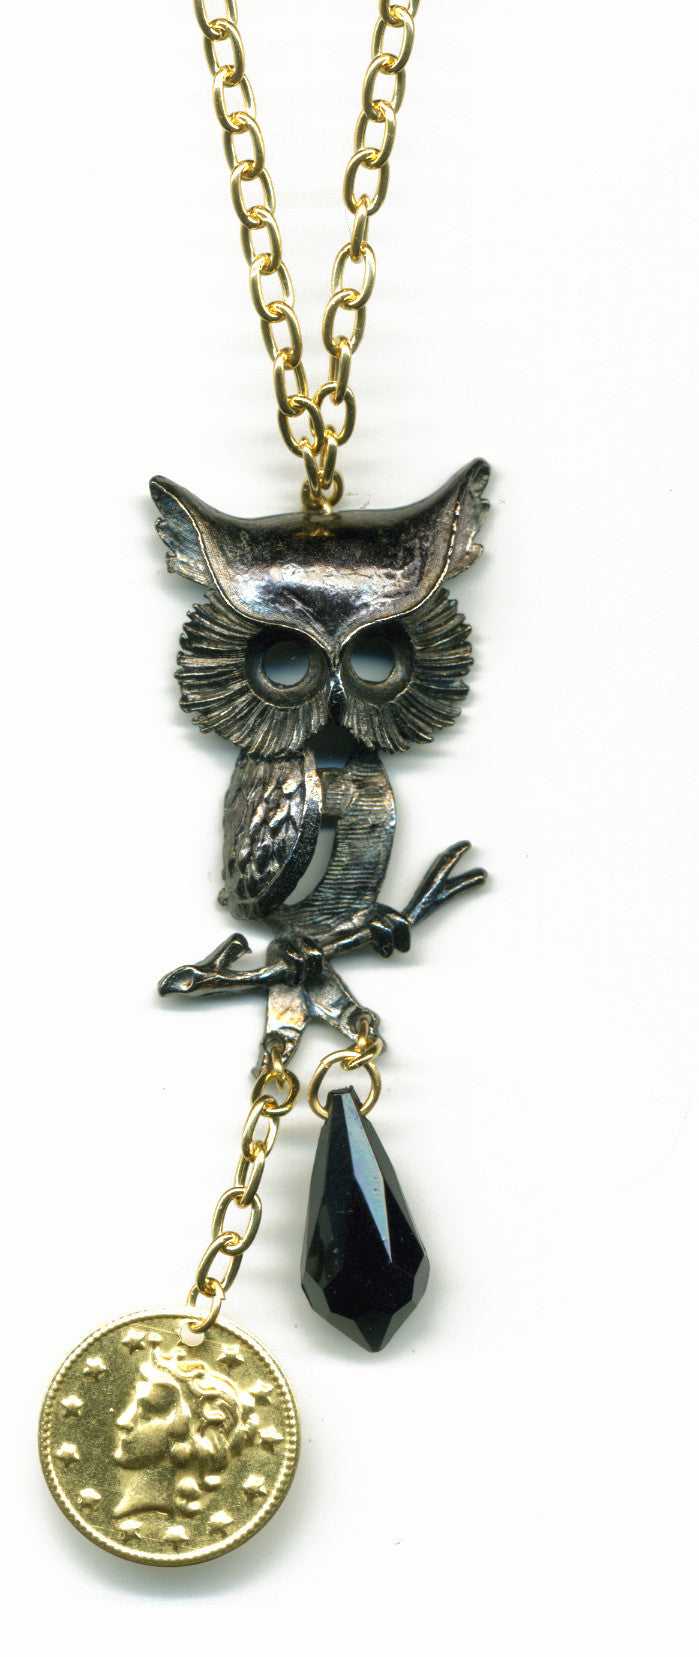 Queen Of The Night owl necklace - Family Affairs